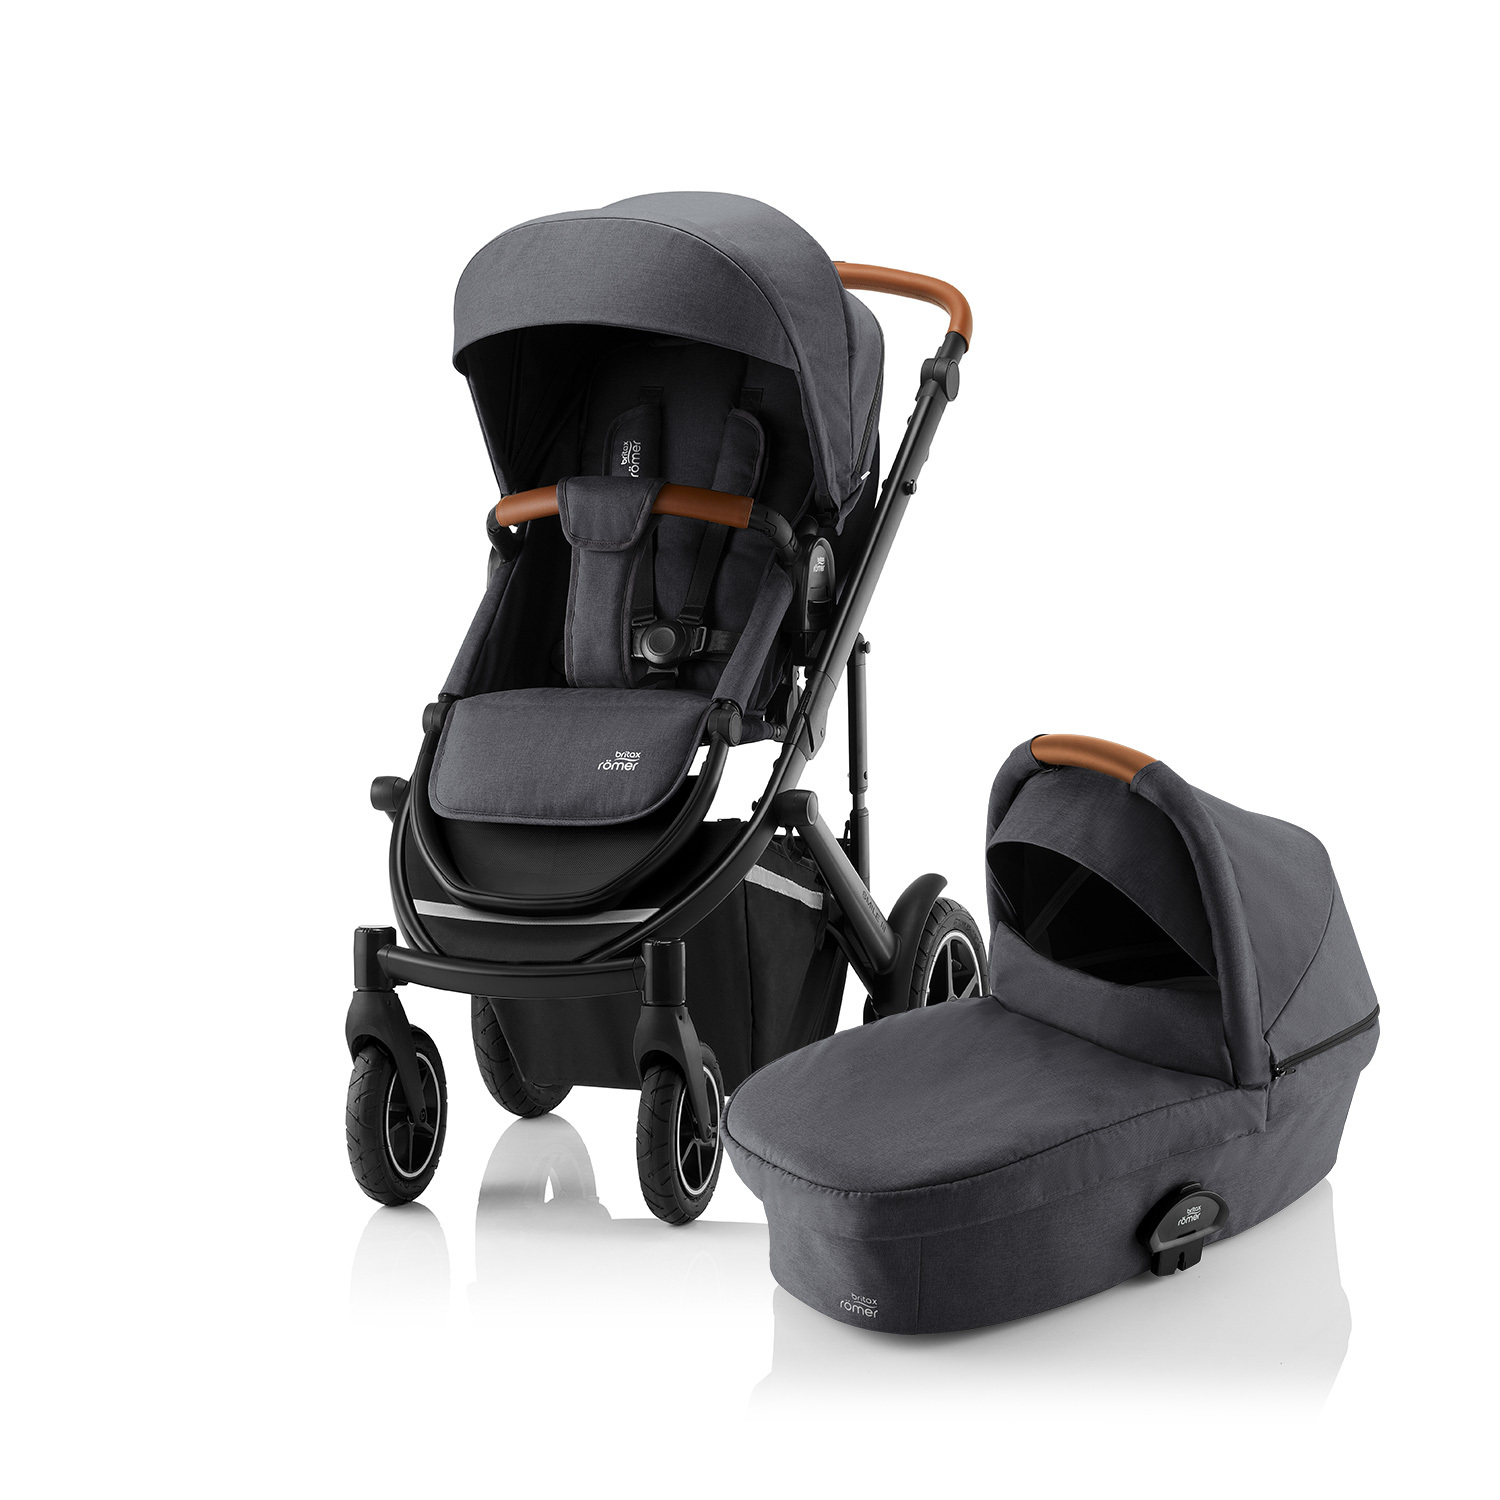 BRITAX ROEMER SMILE III BRITAX ROEMER SMILE III 2 в 1  / 986 SMILE_III_2_в_1_Midnight_Grey.jpg